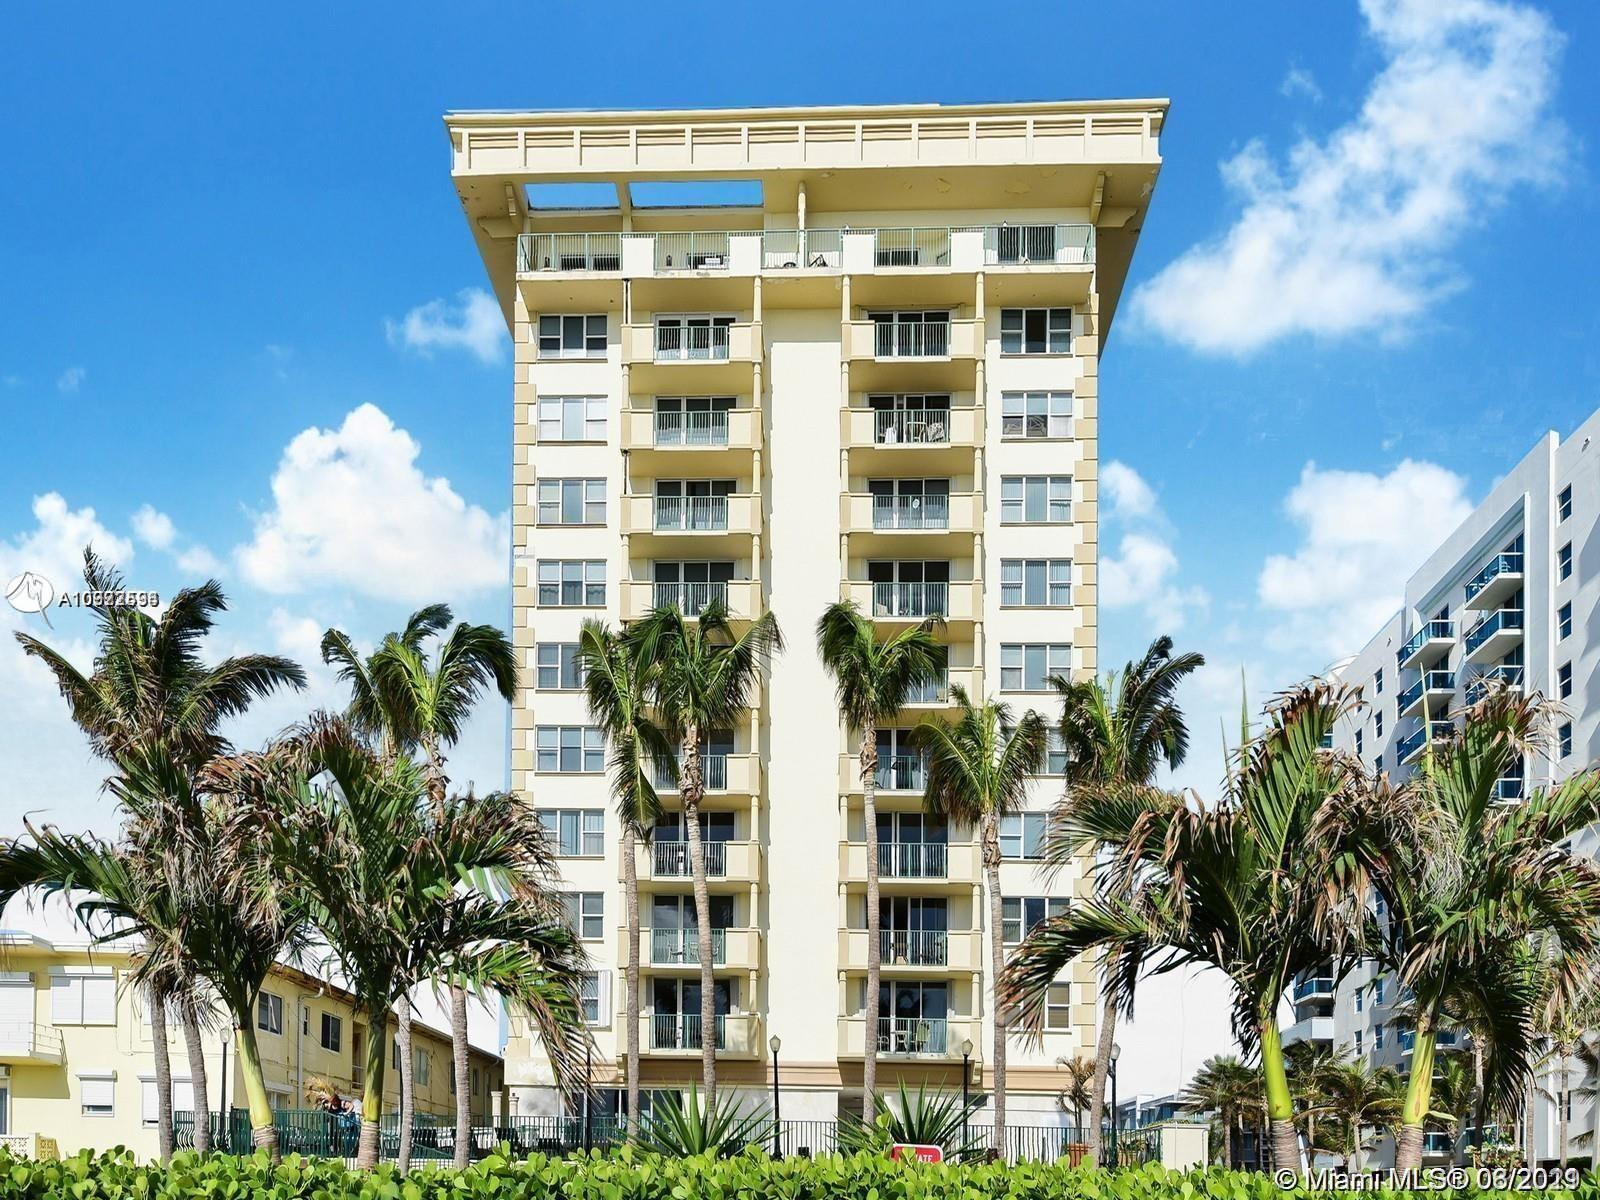 Carlisle on the Ocean #304 - 9195 Collins Ave #304, Surfside, FL 33154